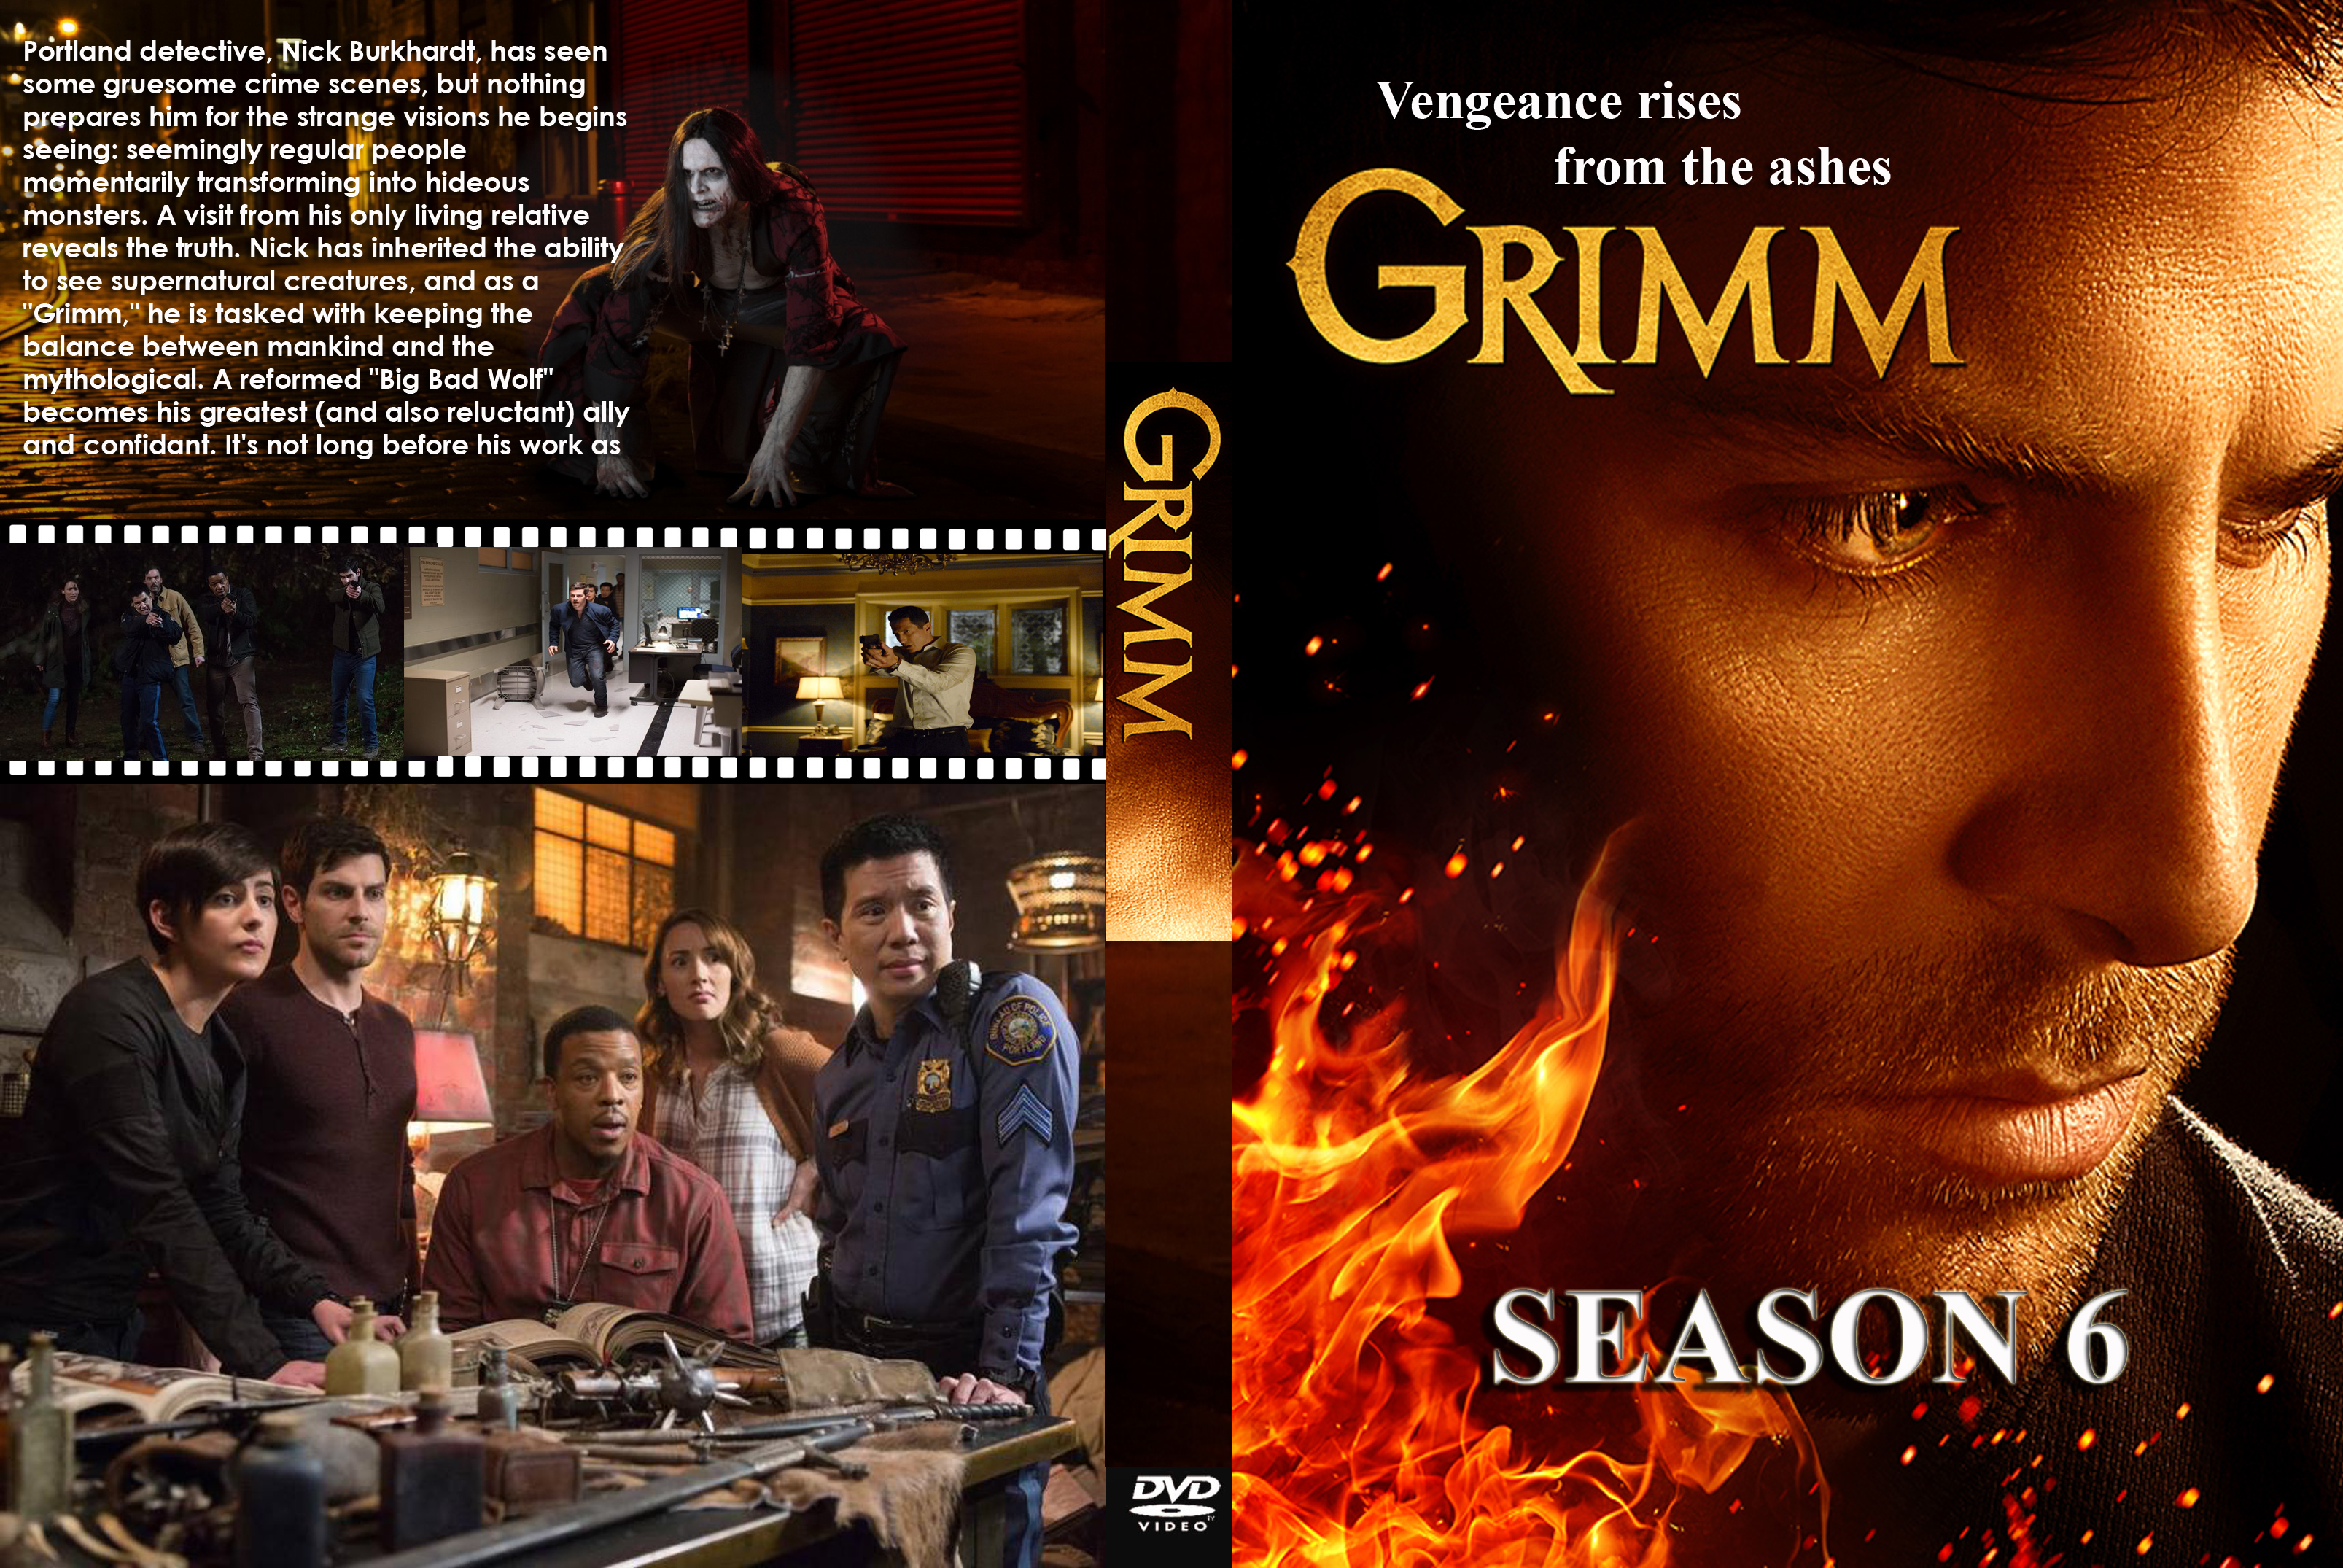 https://www.covercentury.com/covers/dvd/g/Grimm__Season_6_(2017)_R0_CUSTOM-[front].jpg